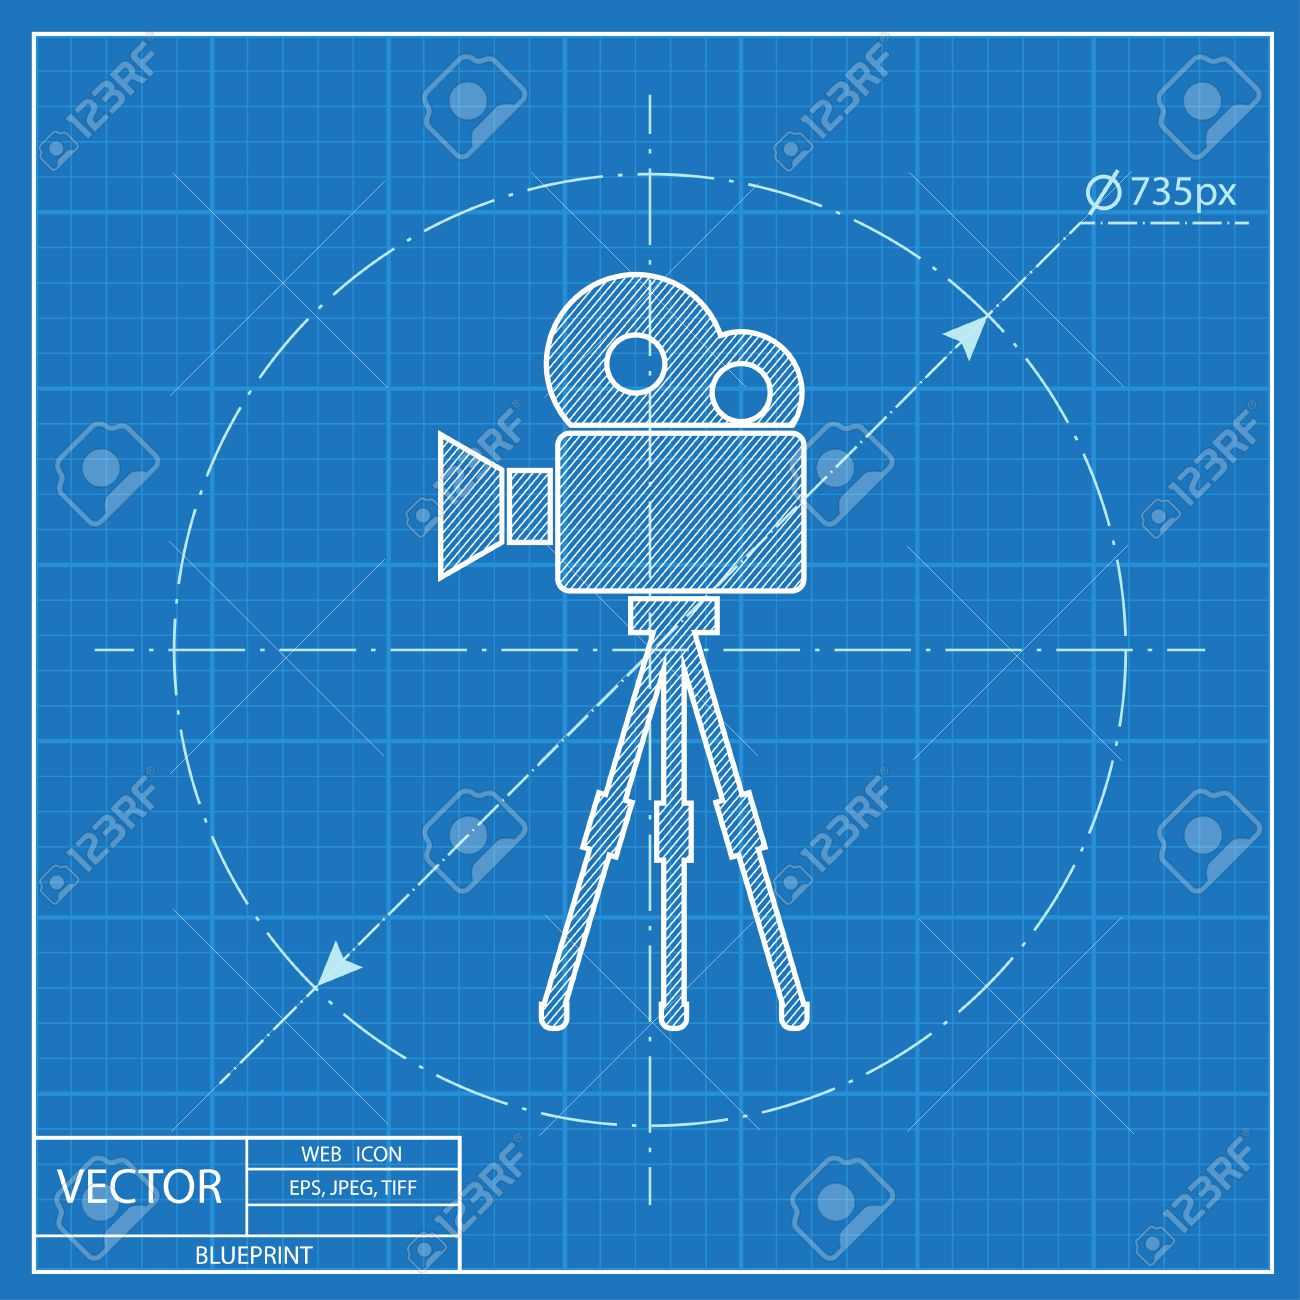 Movie camera on tripod blueprint icon royalty free cliparts movie camera on tripod blueprint icon stock vector 54273119 malvernweather Image collections